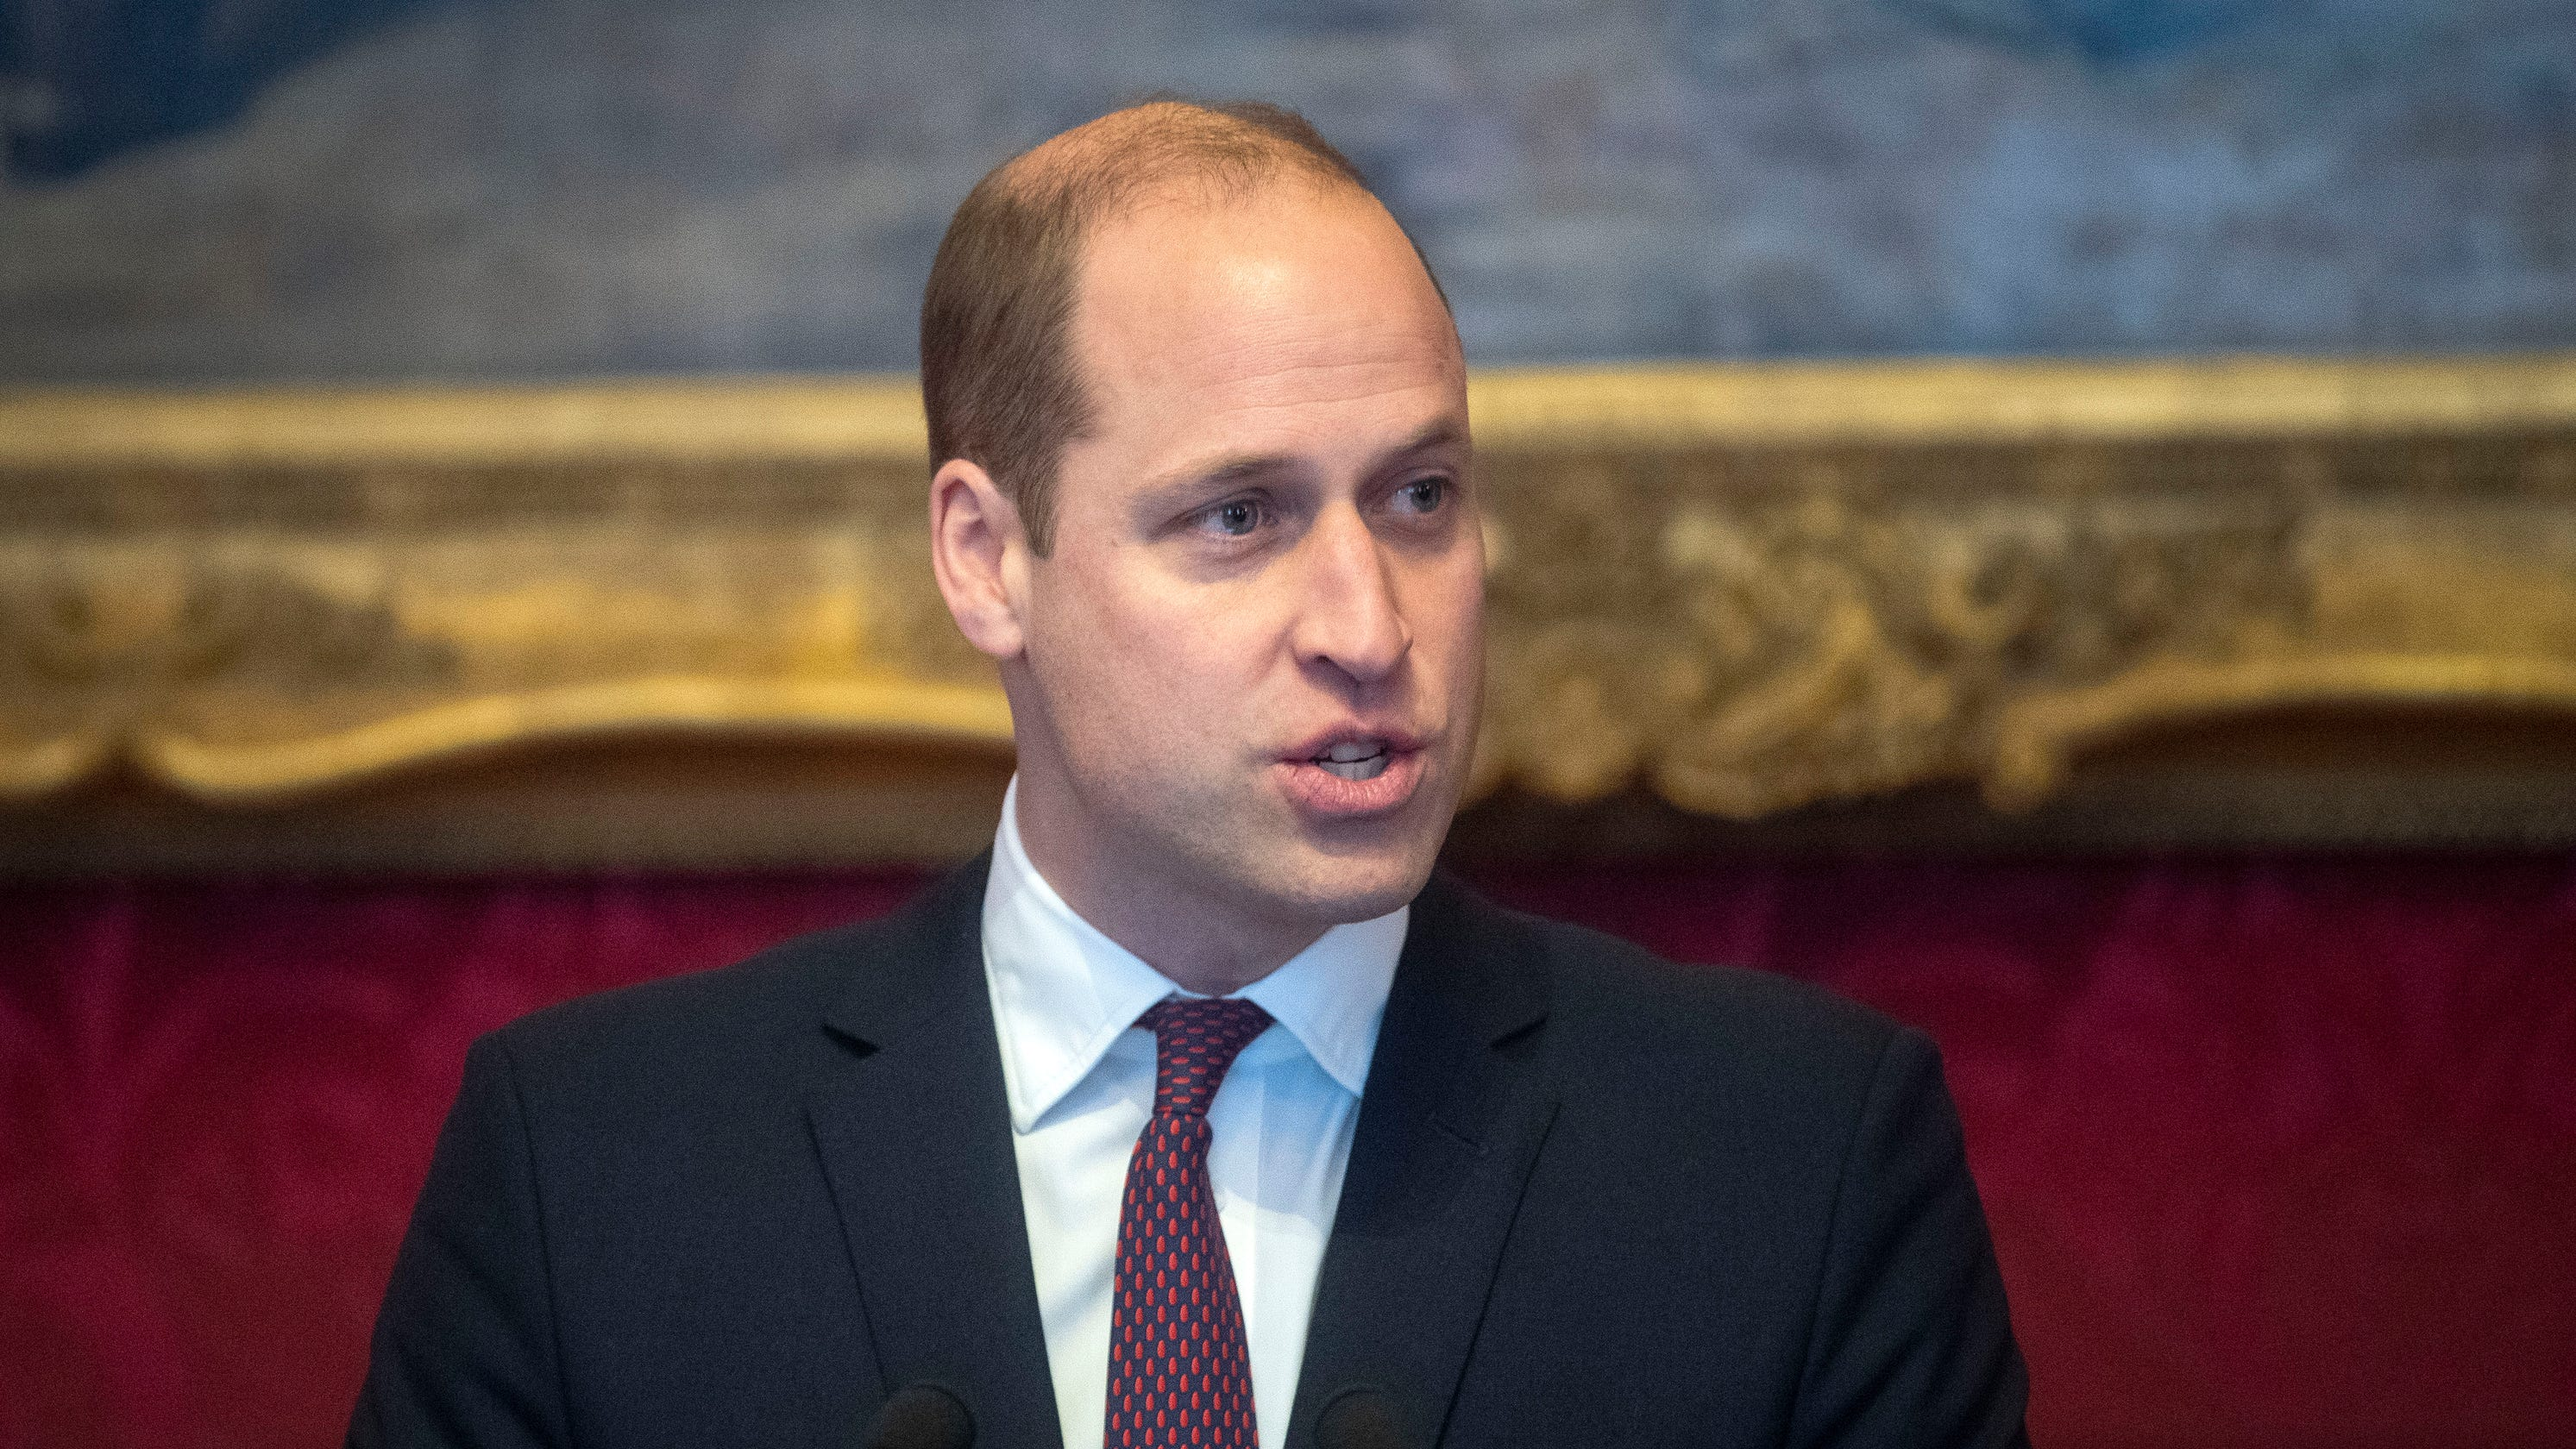 Prince William gets new title from Queen Elizabeth amid Prince Harry, Duchess Meghan exit